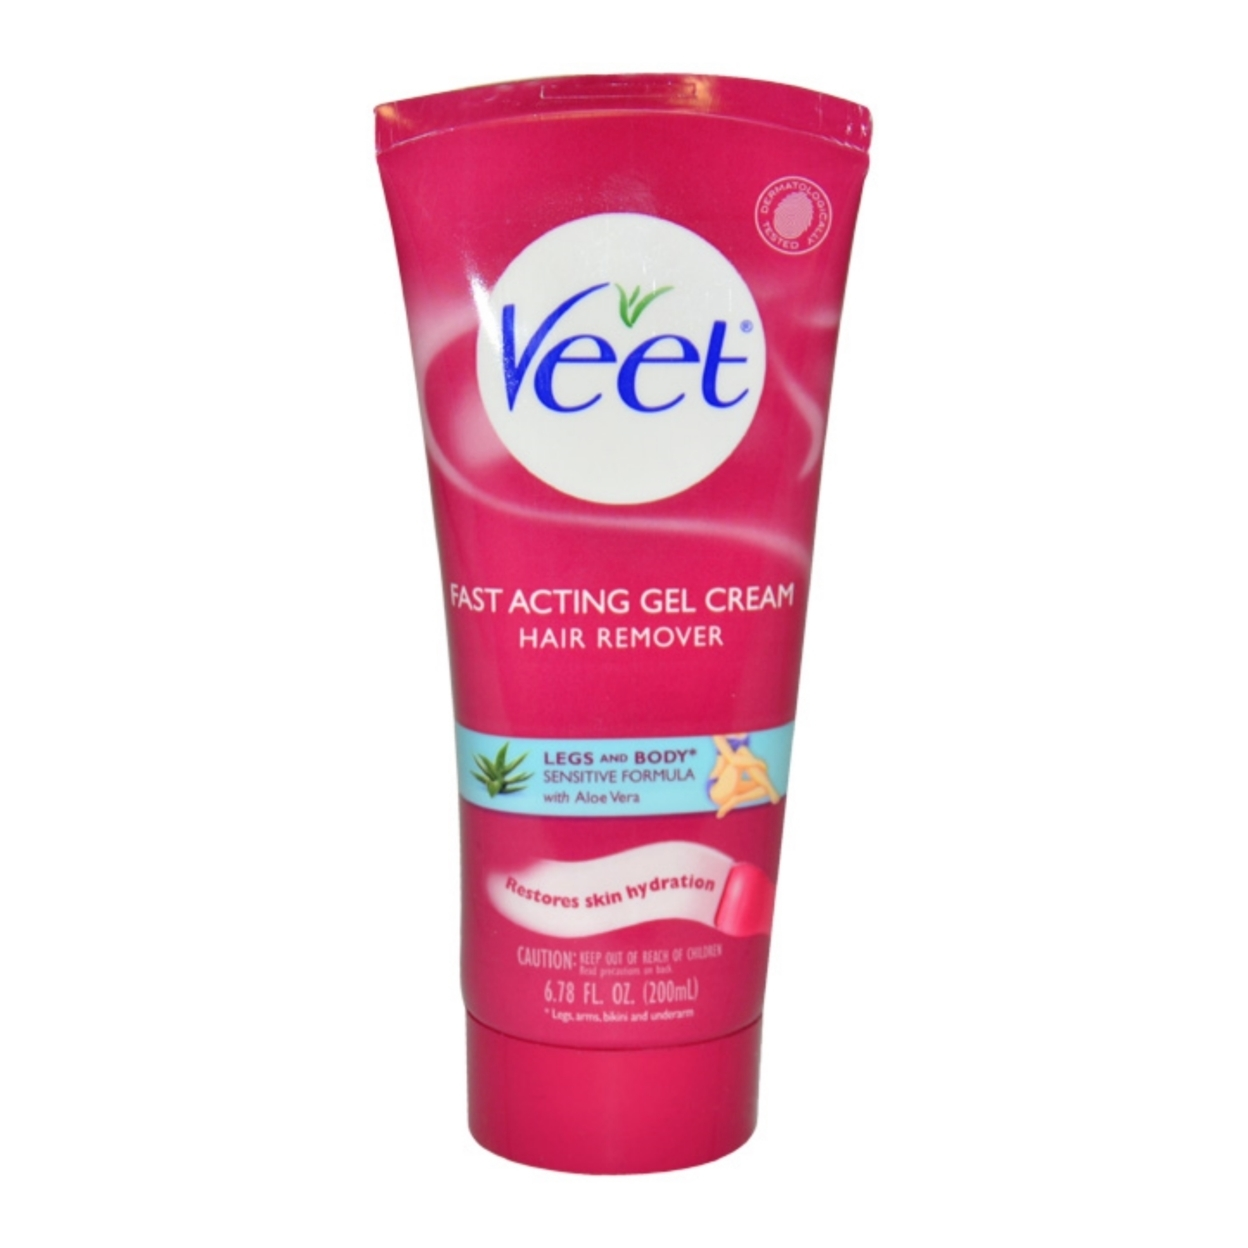 Fast Acting Gel Cream Hair Remover by Veet for Women - 6.78 oz Hair Remover 583c6acae2246159f05af57d